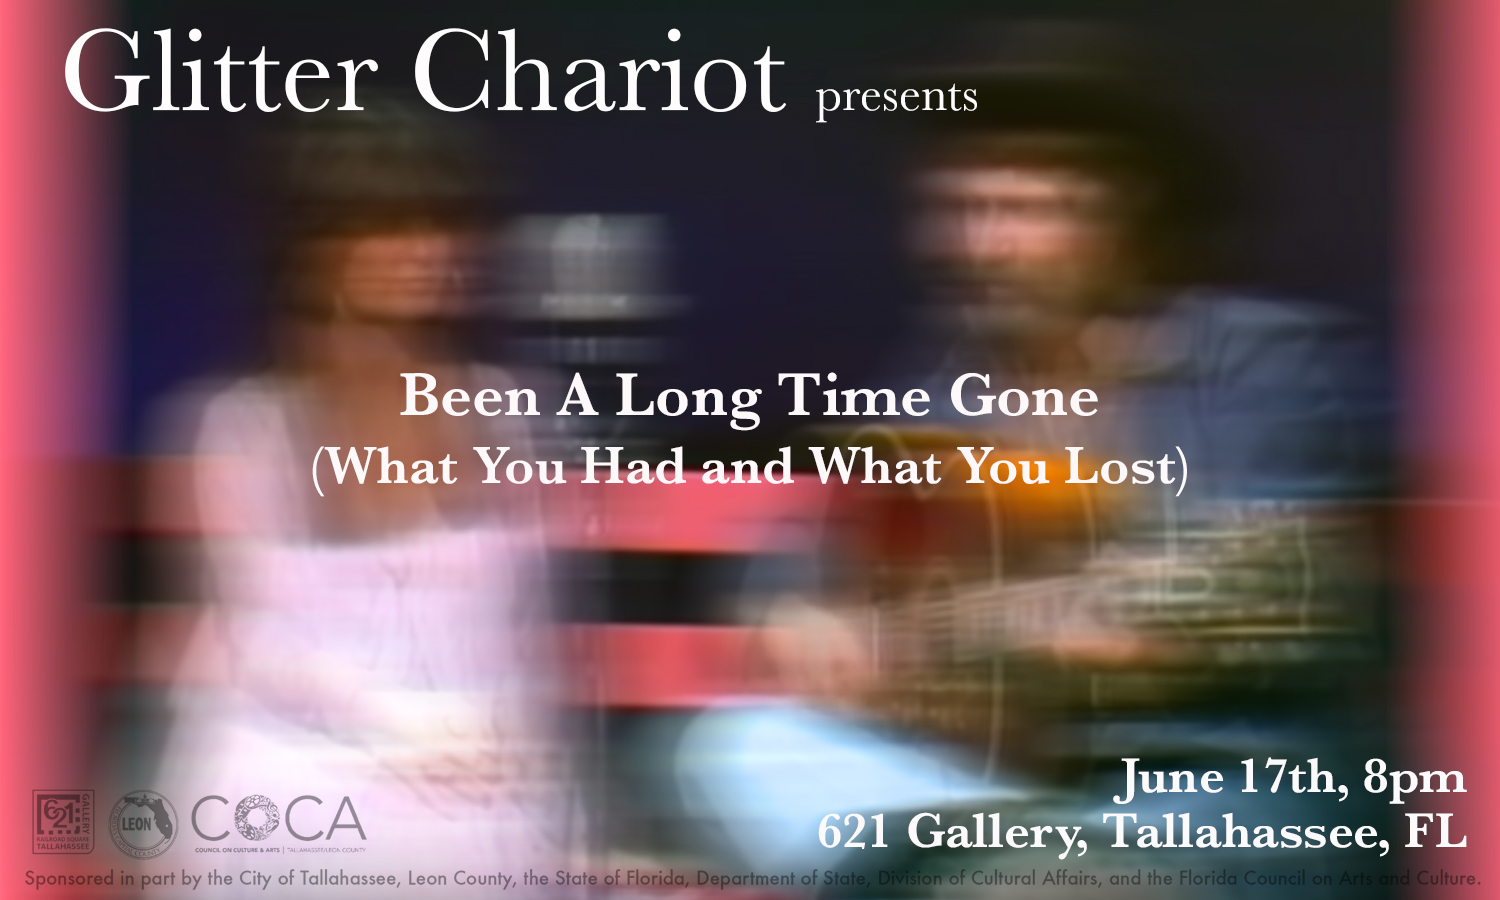 Glitter Chariot Presents: Been A Long Time Gone (What You Had and What You Lost)